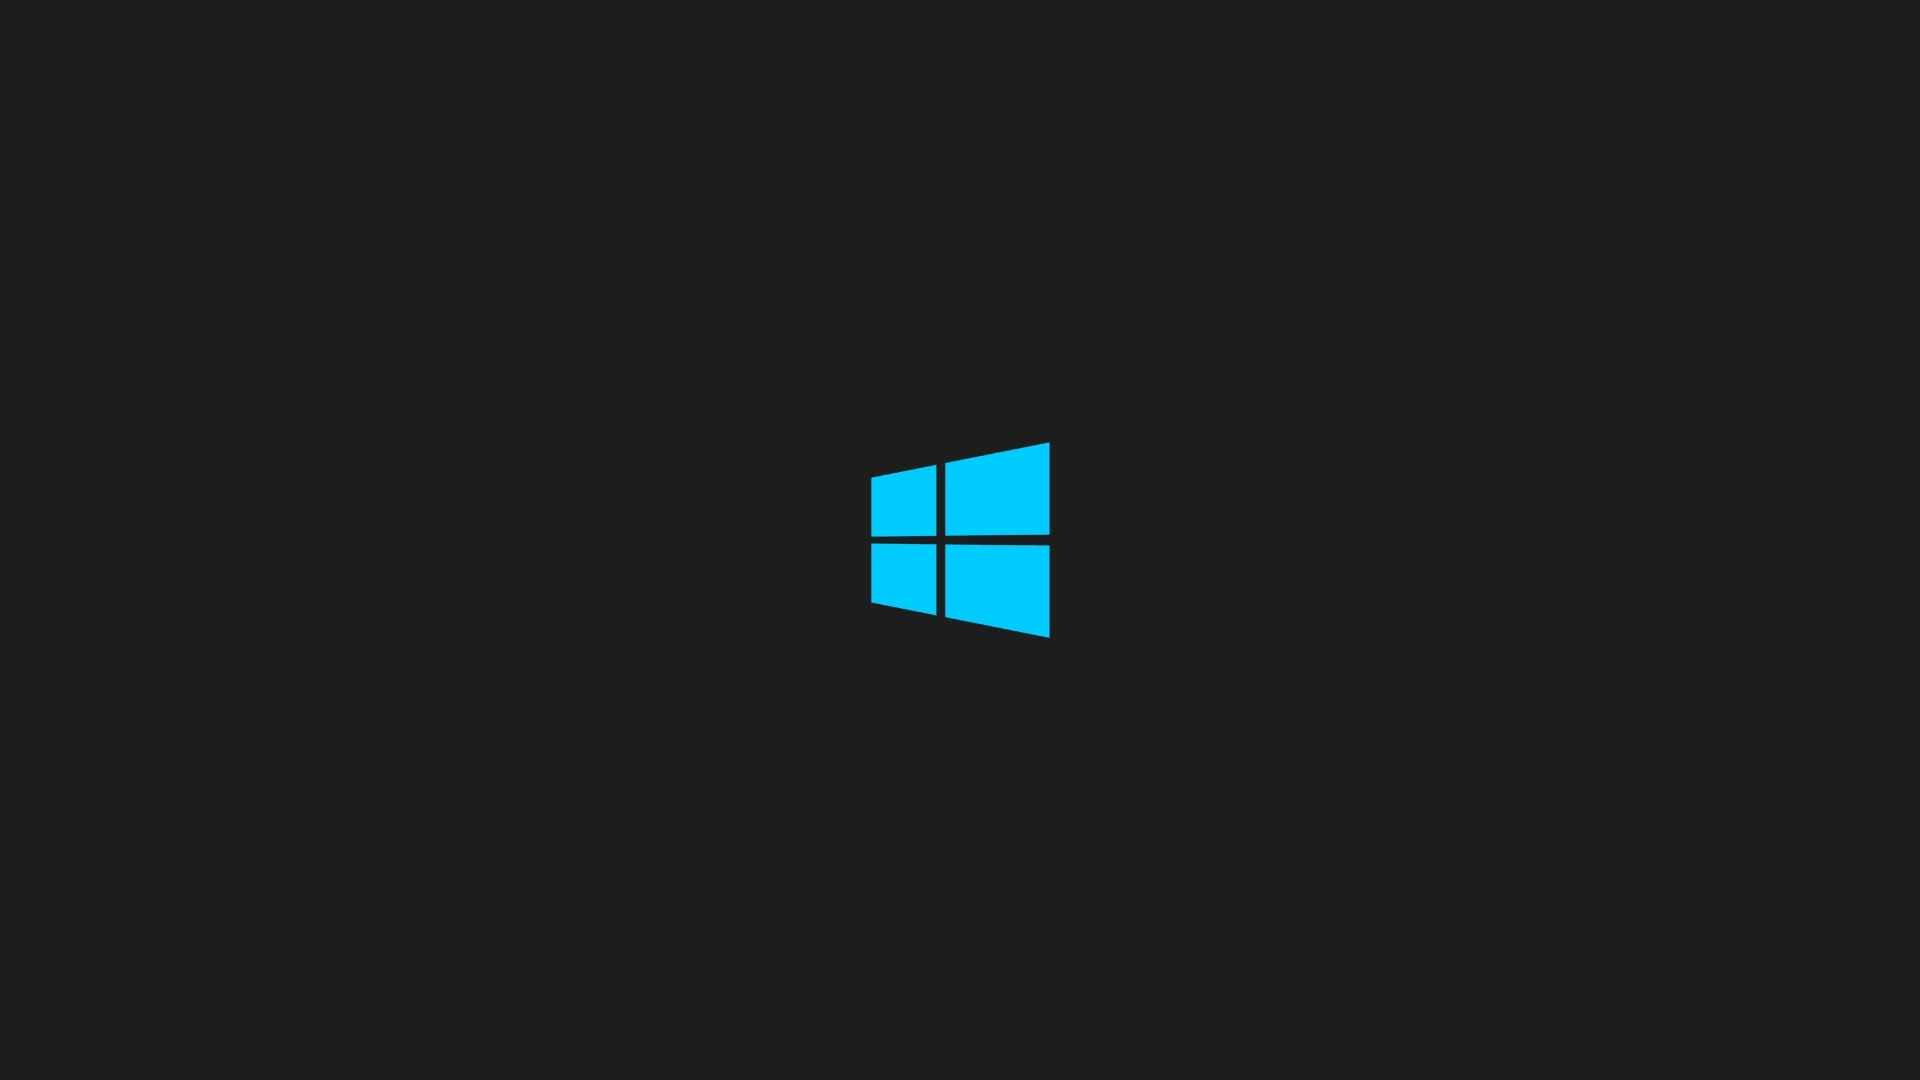 Download Wallpapers, Download minimalistic dark metro windows 8